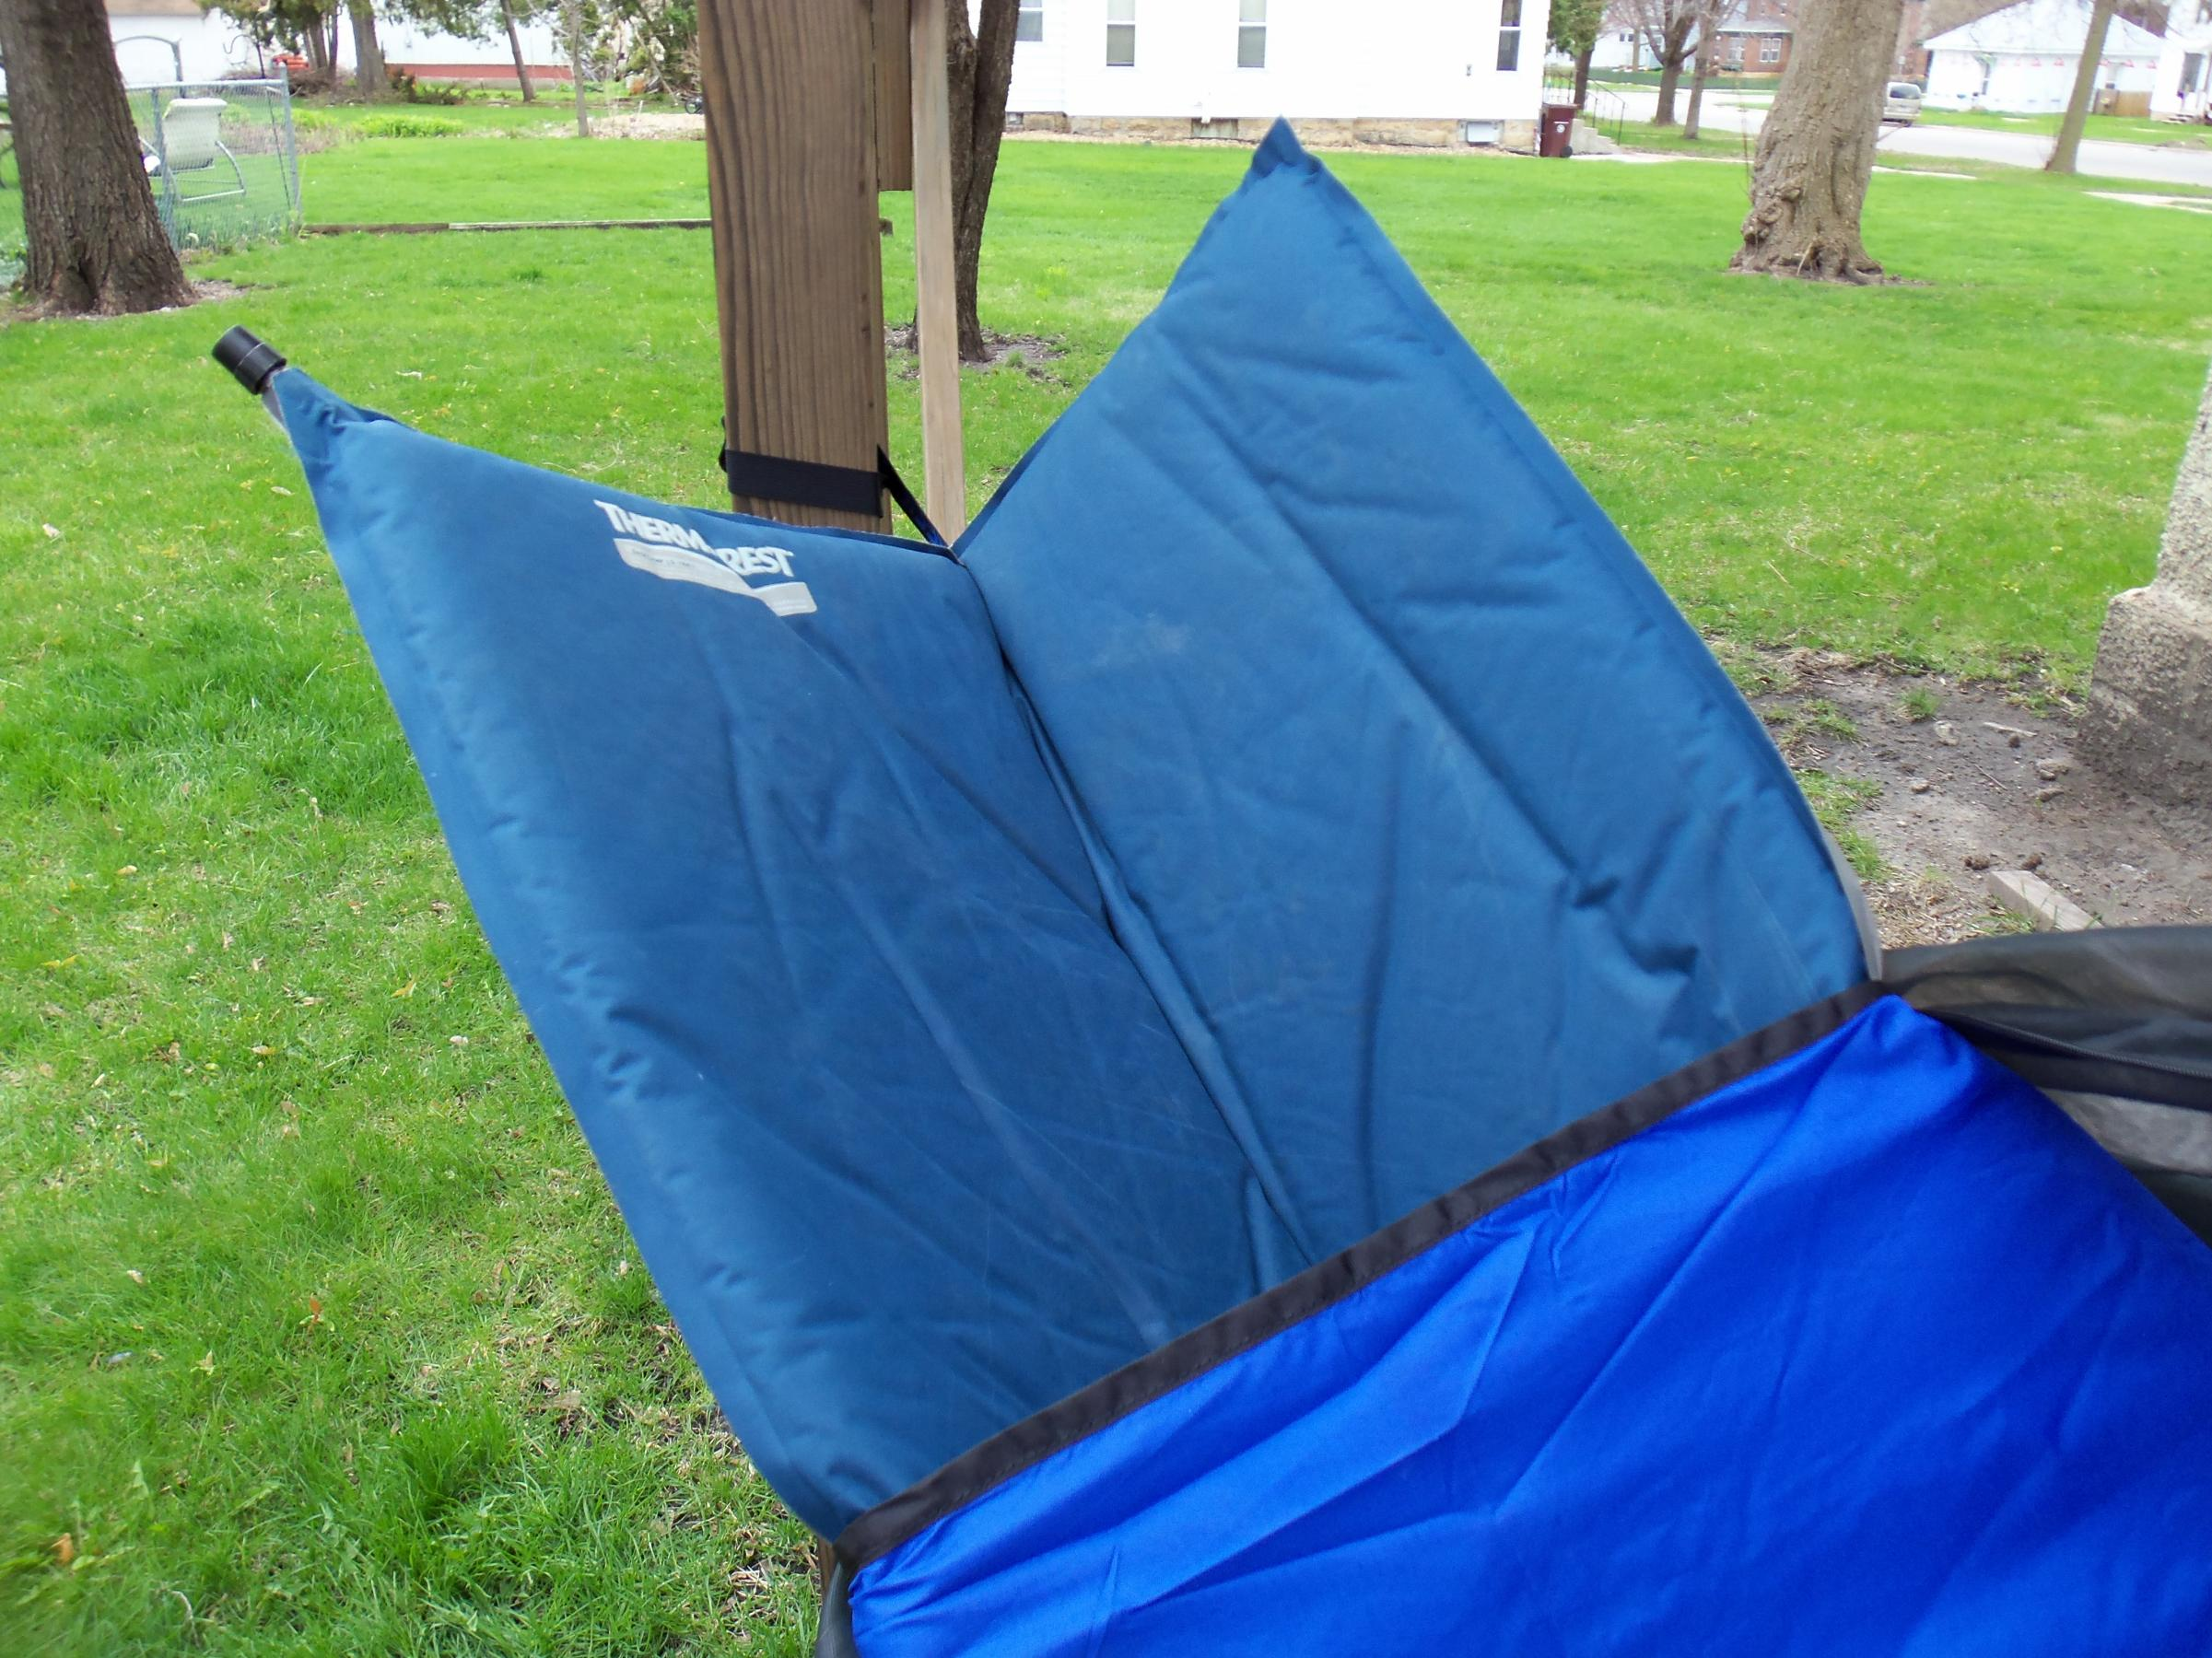 does have mosquito  ting and have tarp to cover  plus it has a sleeve on inside to hold a sleeping pad from sliding around  either i start to use it or     bwca crazy creek hammock boundary waters gear forum  rh   bwca